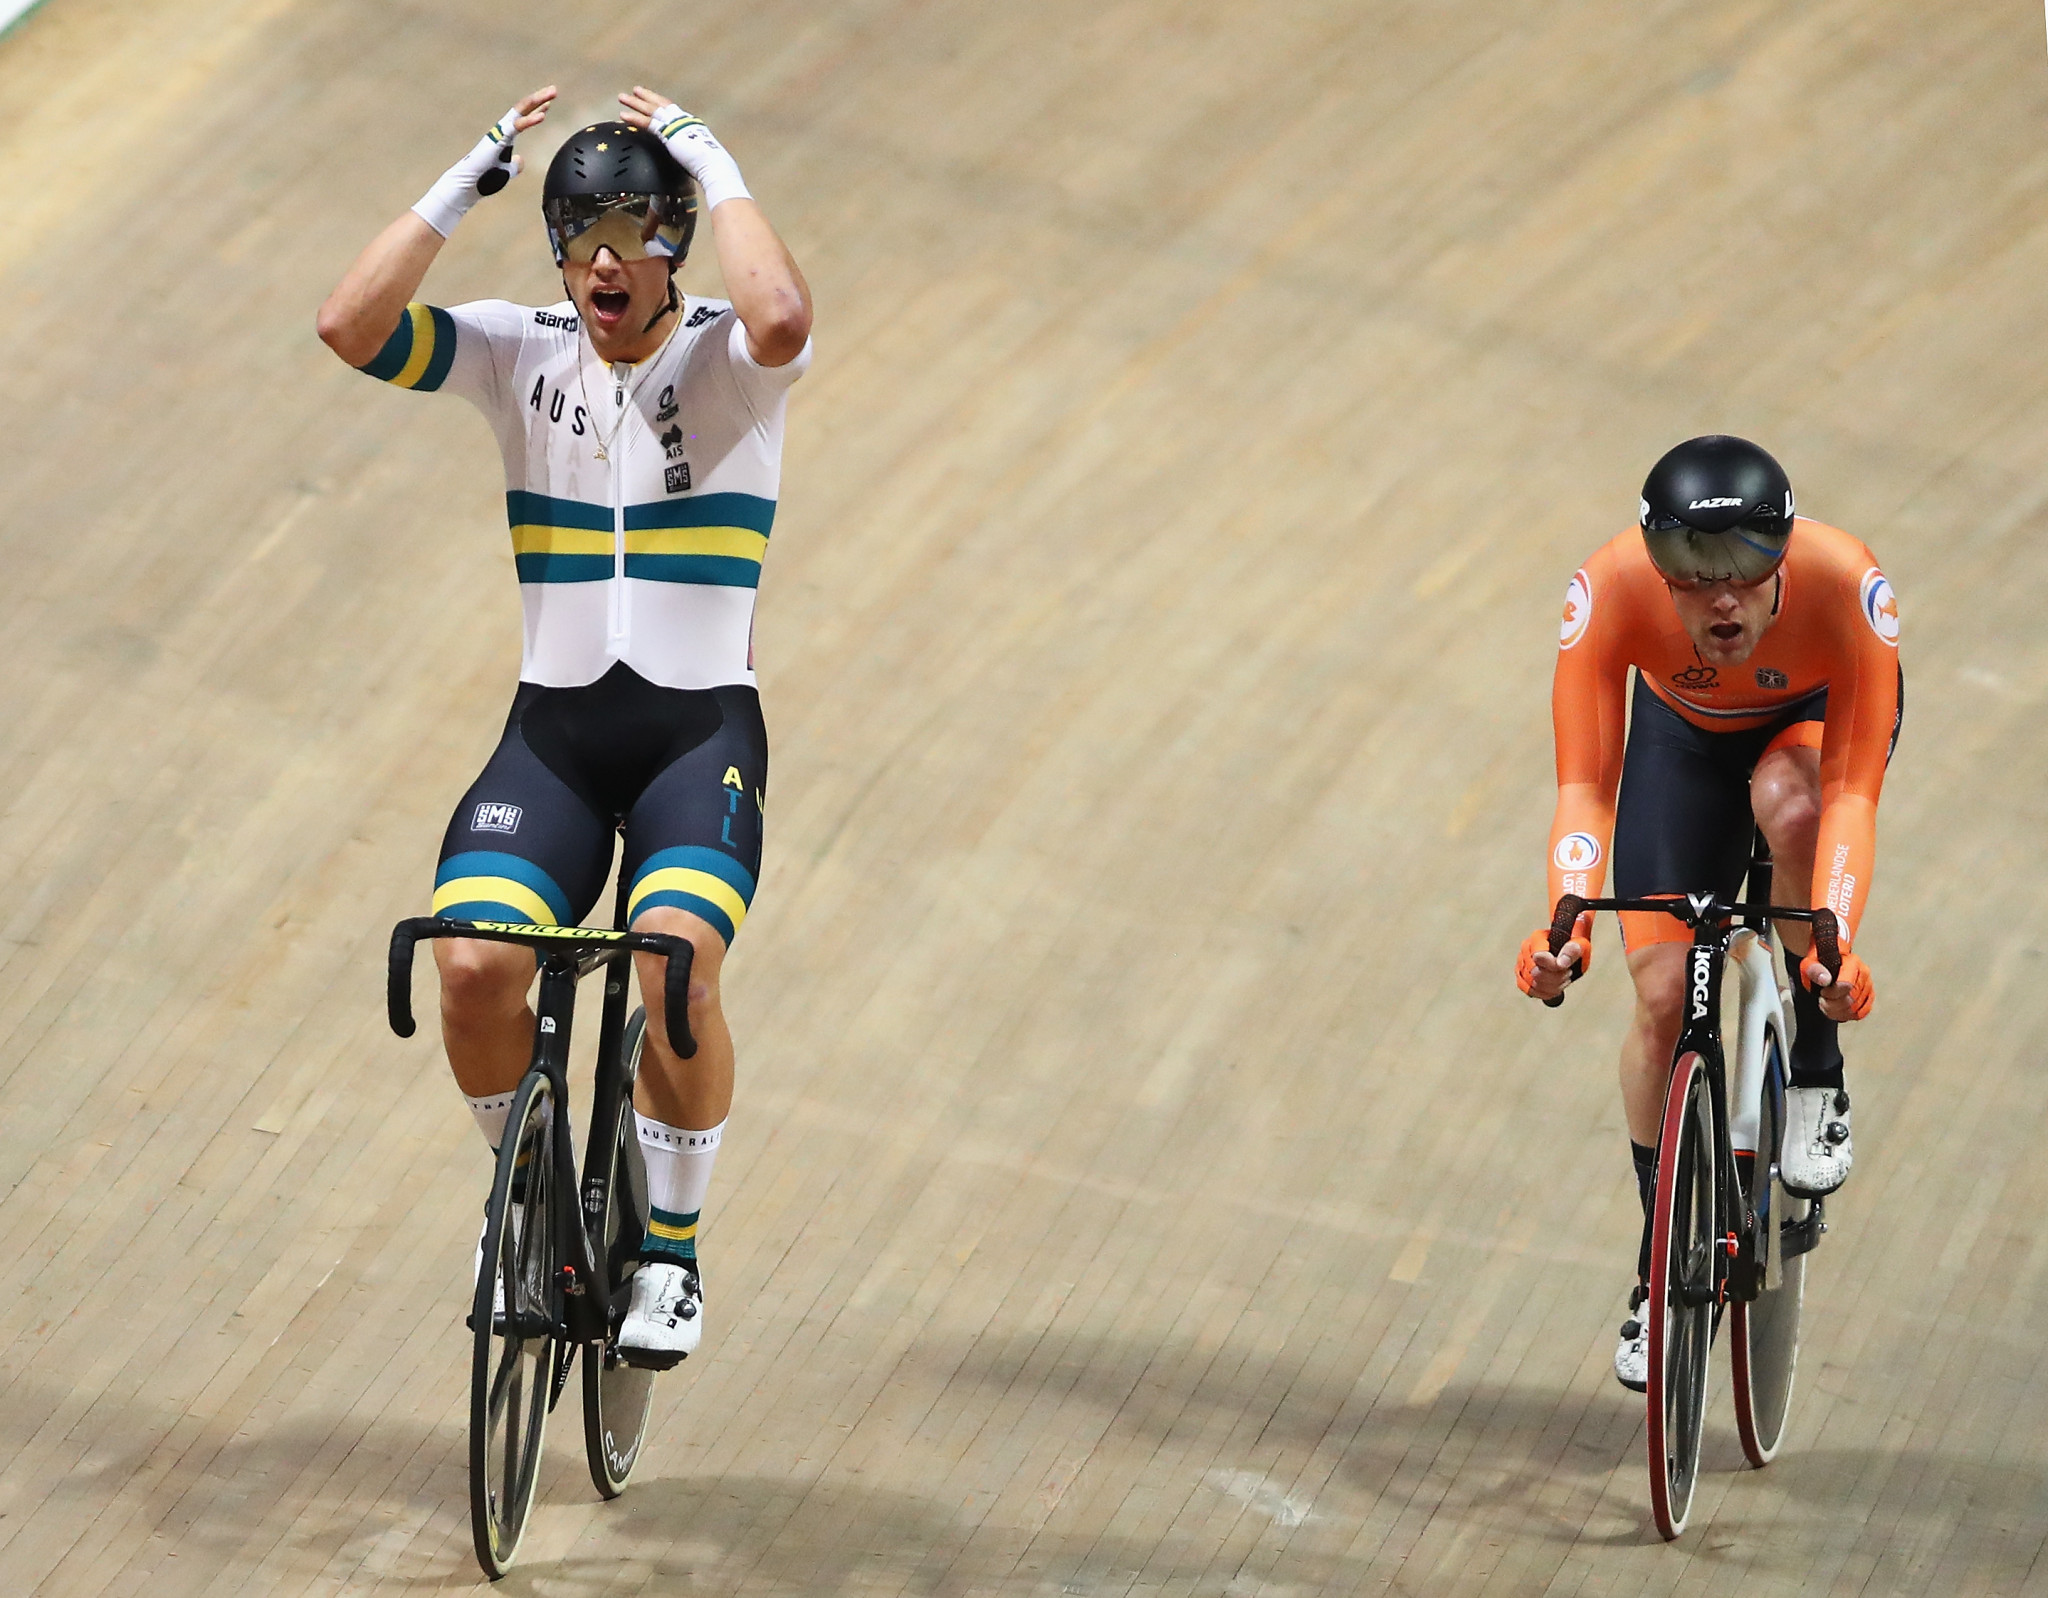 Welsford wins two golds within 30 minutes at UCI Track Cycling World Championships